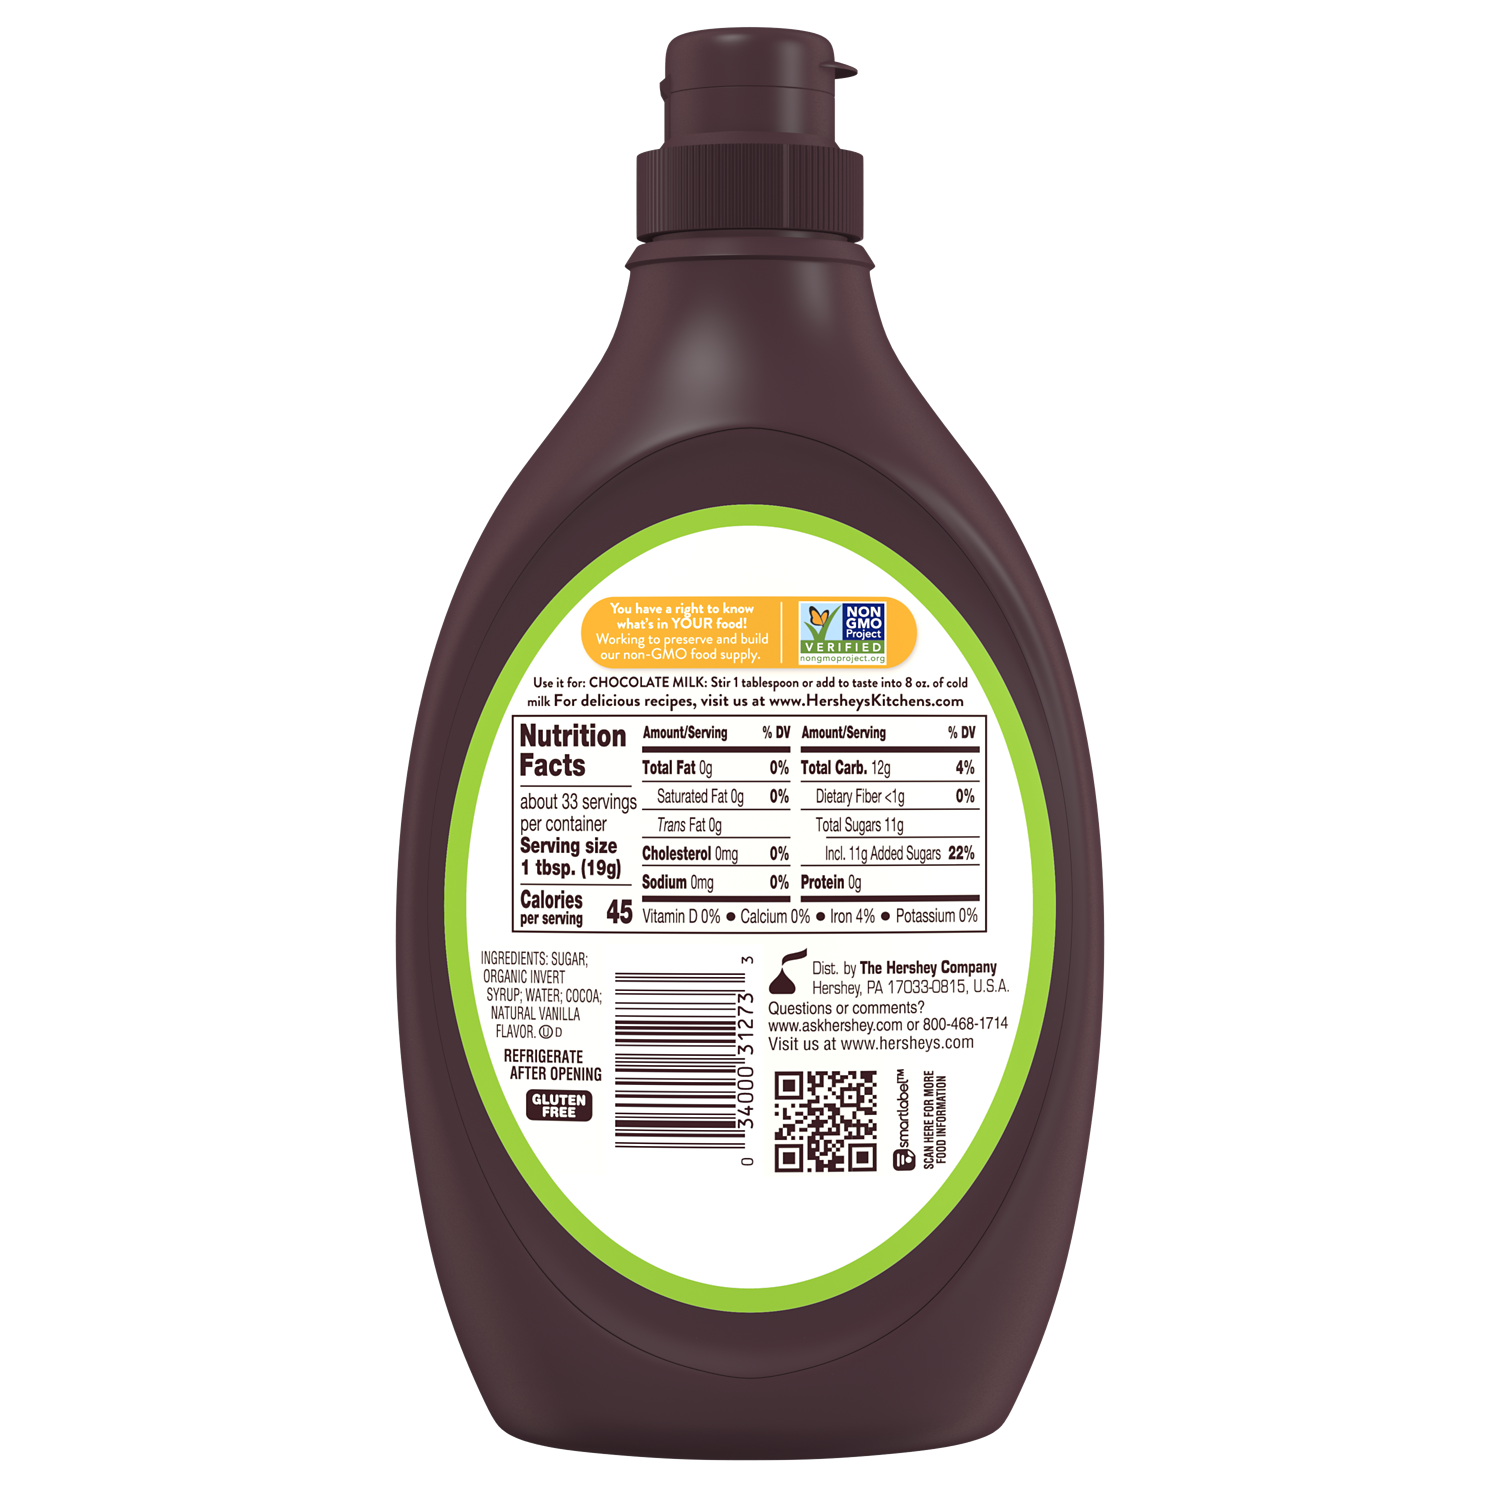 HERSHEY'S Simply 5 Chocolate Syrup, 21.8 oz bottle - Back of Package